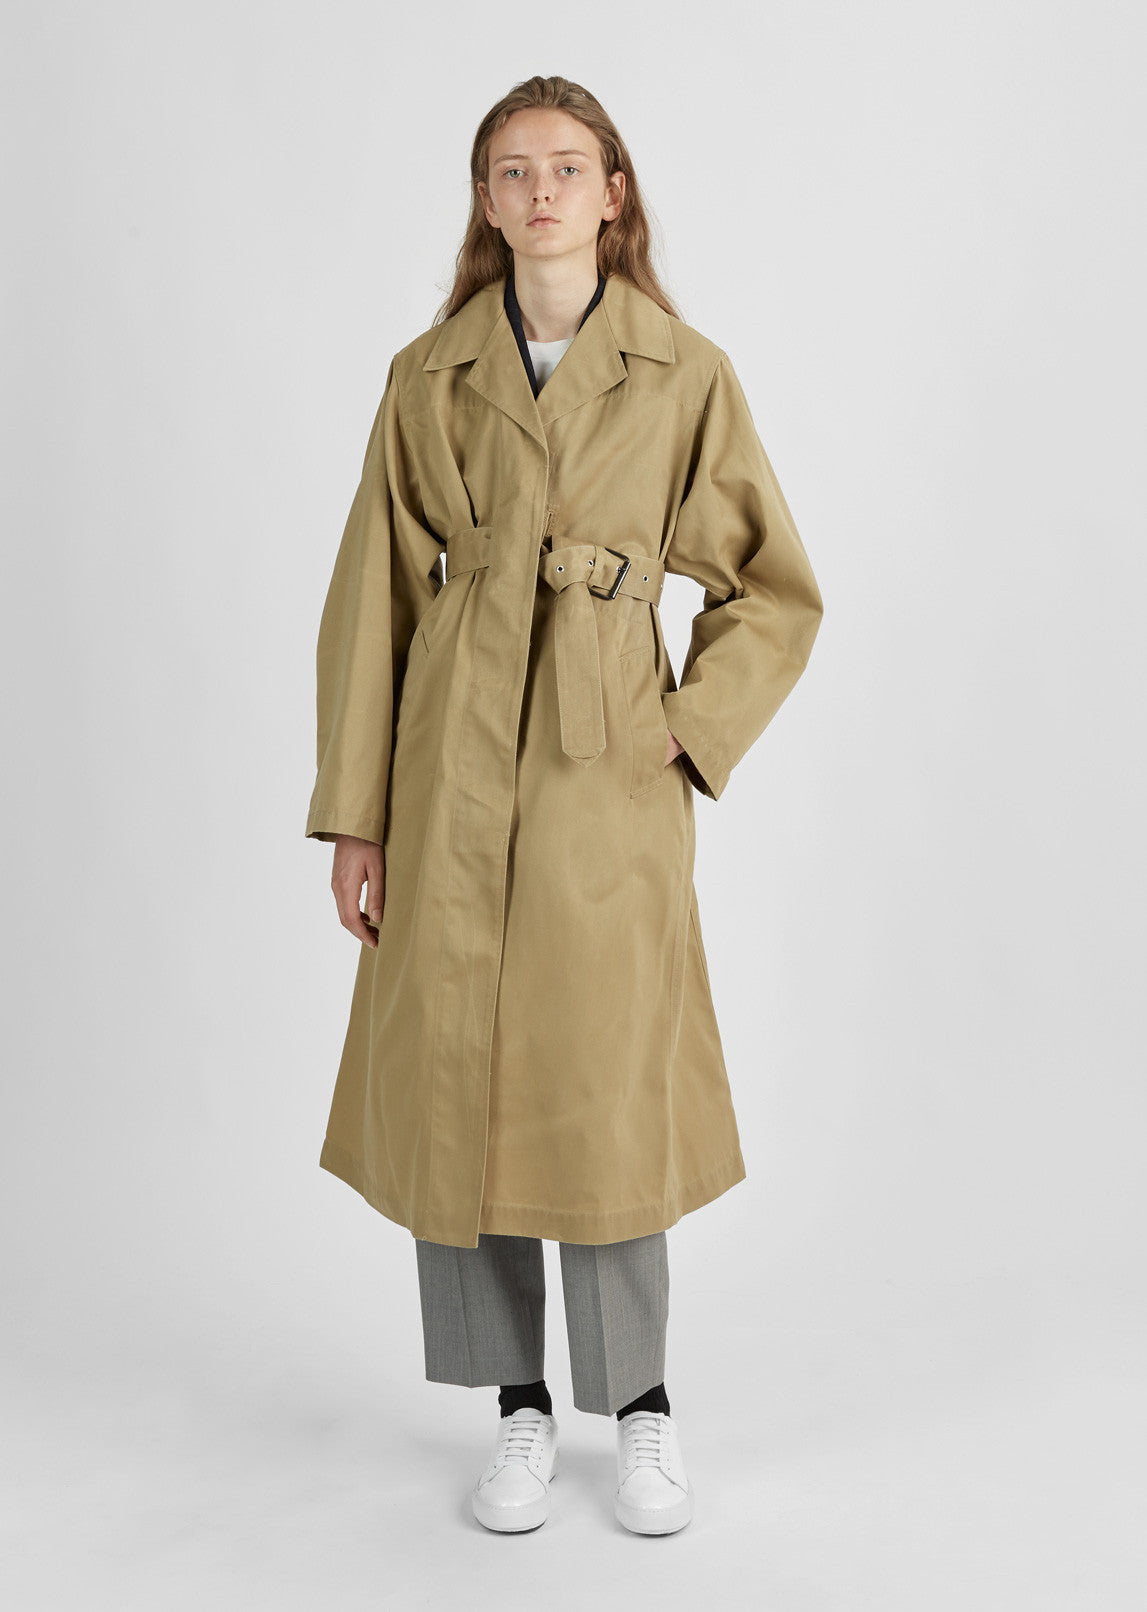 0904bdb7f34 Fawn Cotton Trench Coat by Isabel Marant- La Garçonne